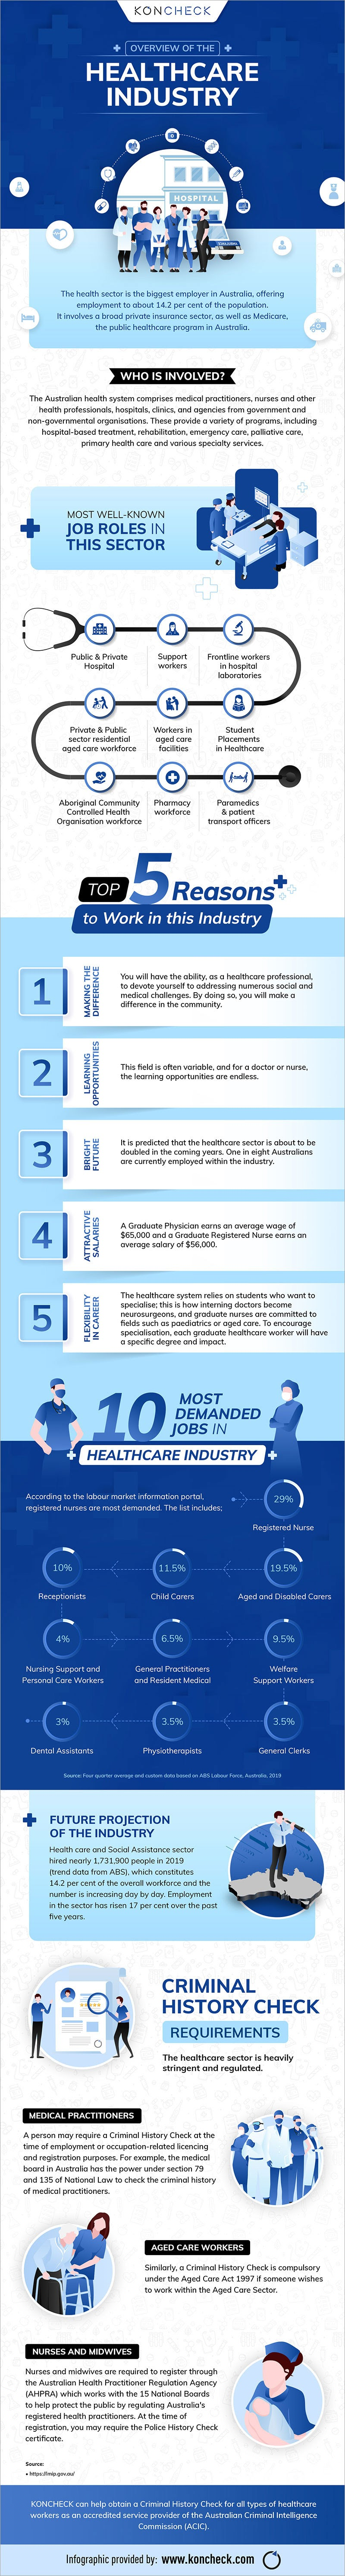 An Overall Guide to the Healthcare industry in Australia #infographic